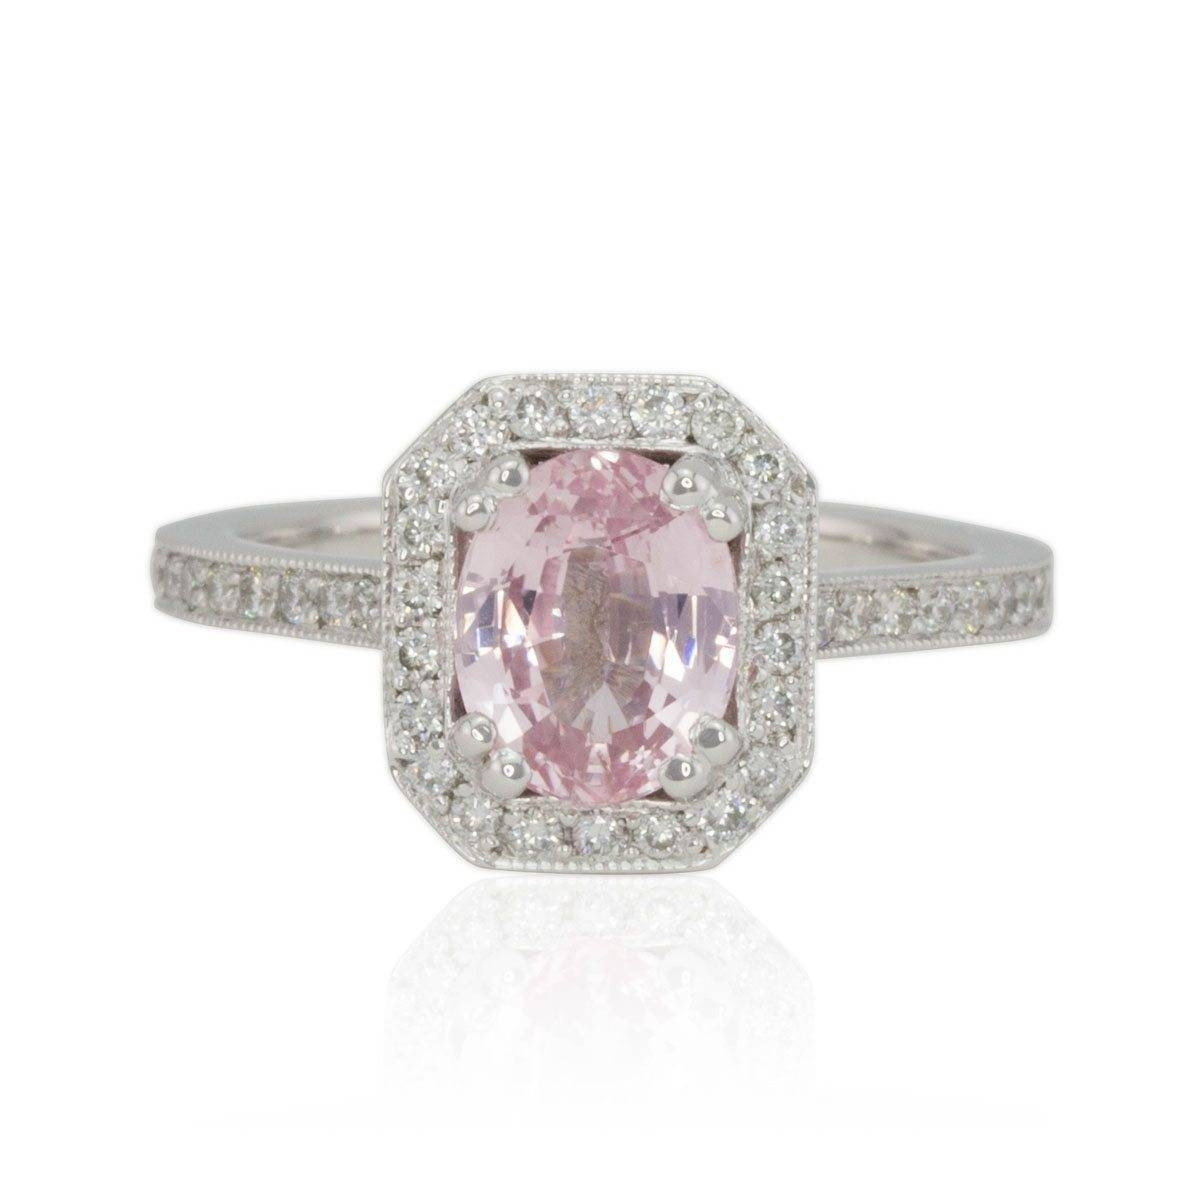 Vintage Look Oval Pink Sapphire Engagement Ring With Octagon Halo Inside Pink Sapphire Engagement Rings With Diamonds (View 14 of 15)